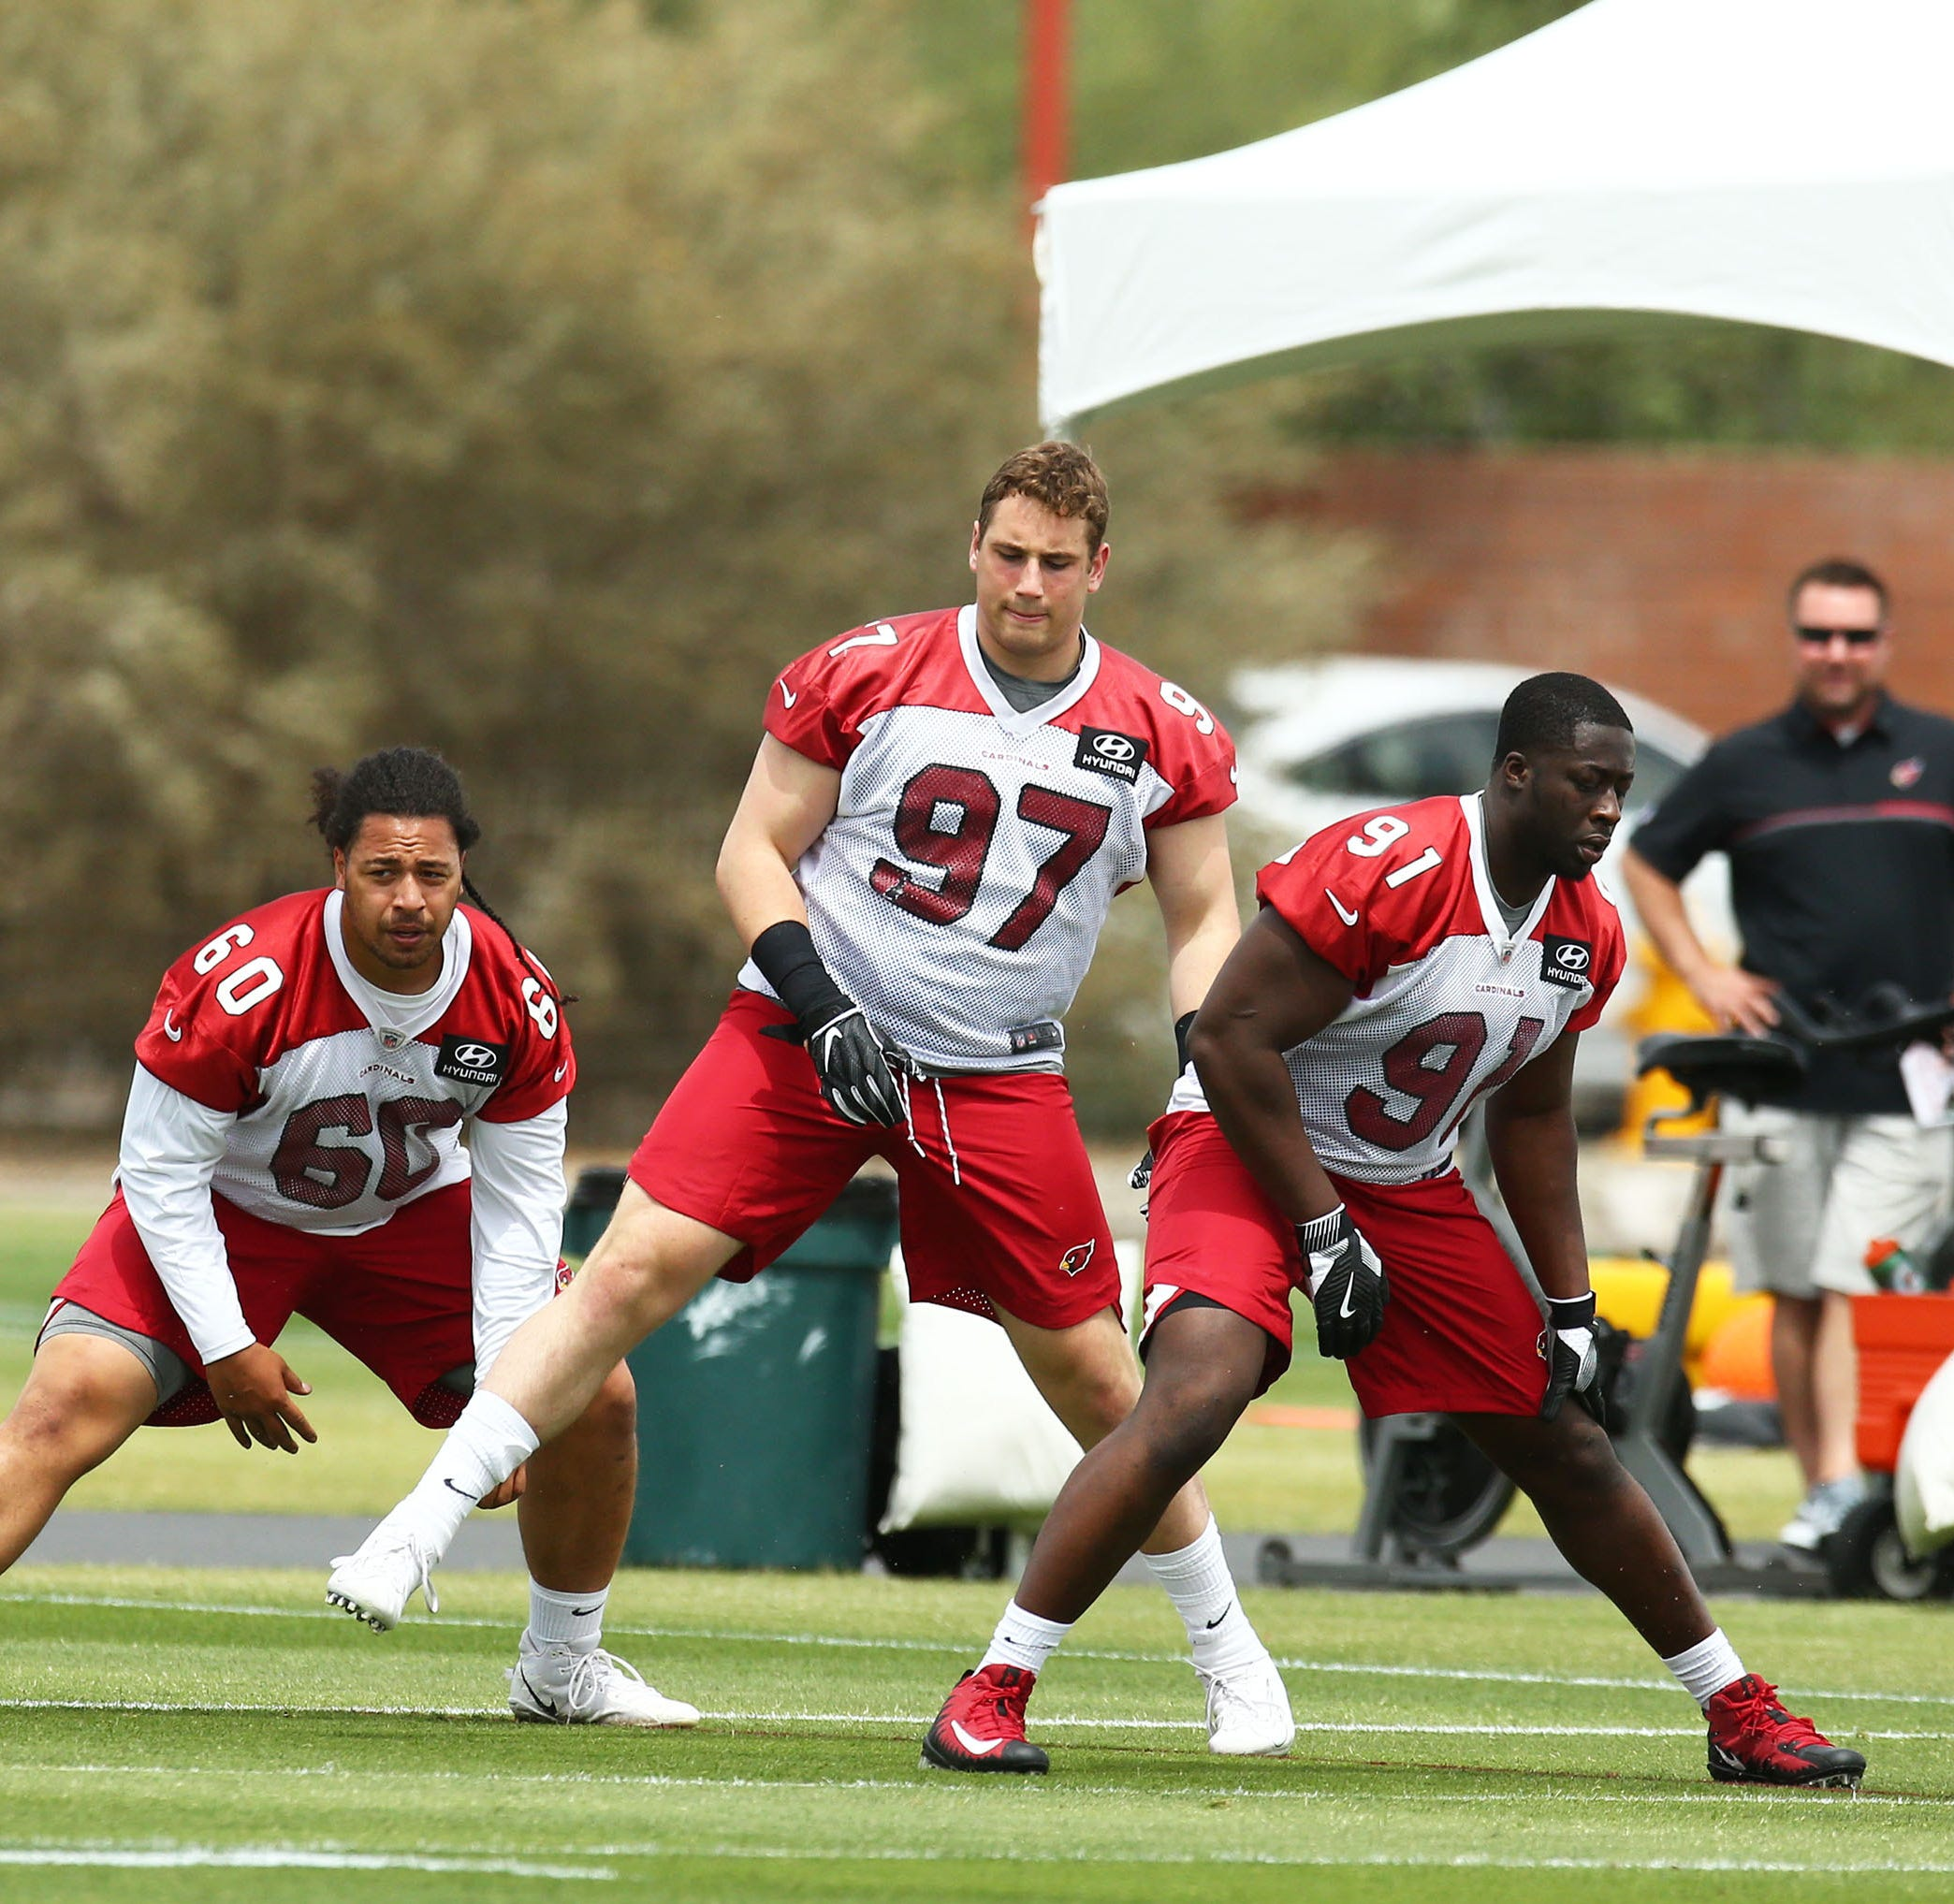 Arizona Cardinals rookie defensive end Zach Allen brings extreme intensity